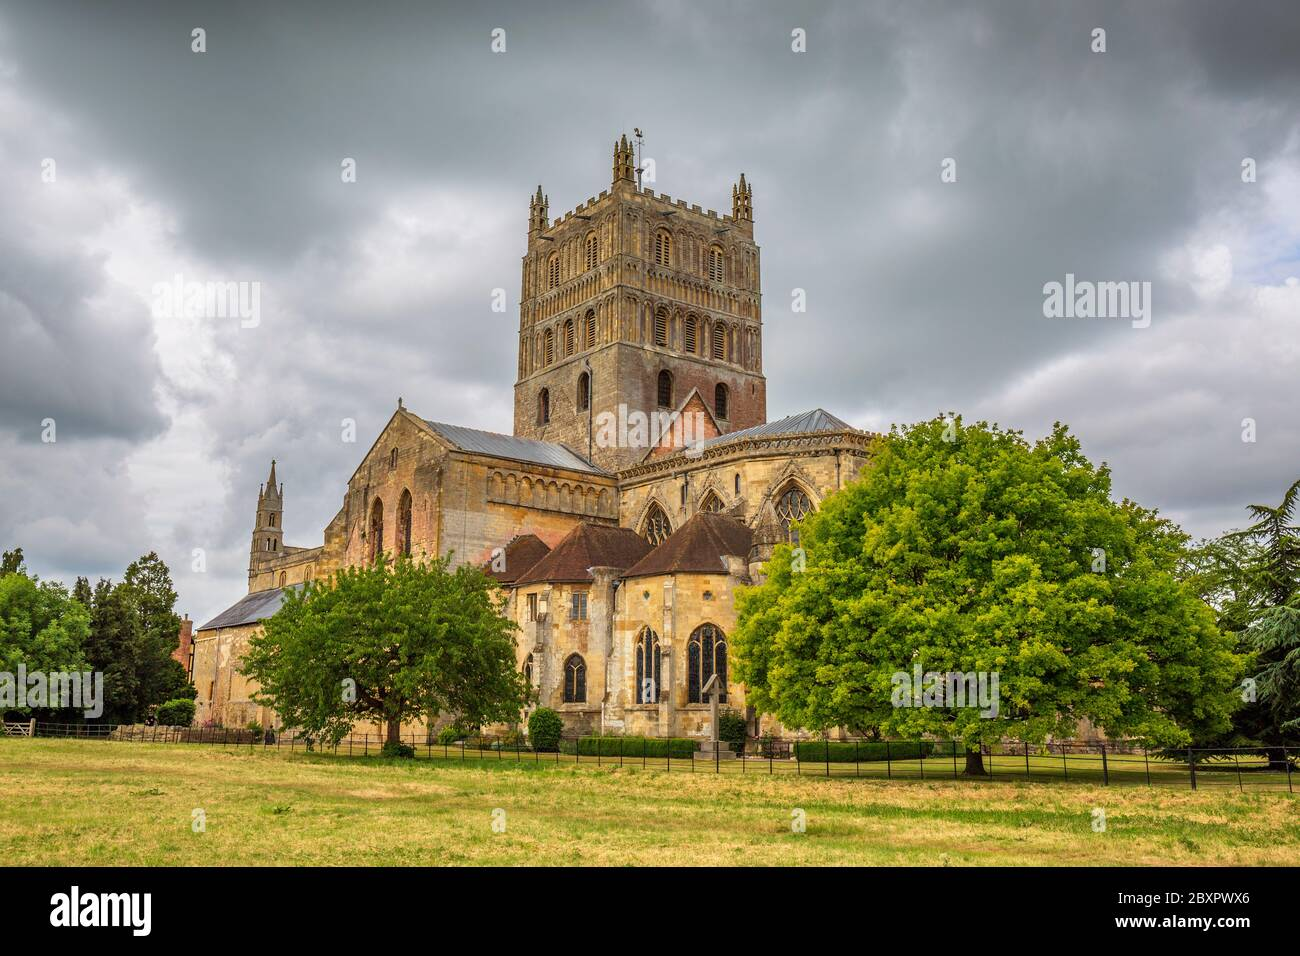 A west view of Tewkesbury Abbey Church in Gloucestershire, England Stock Photo